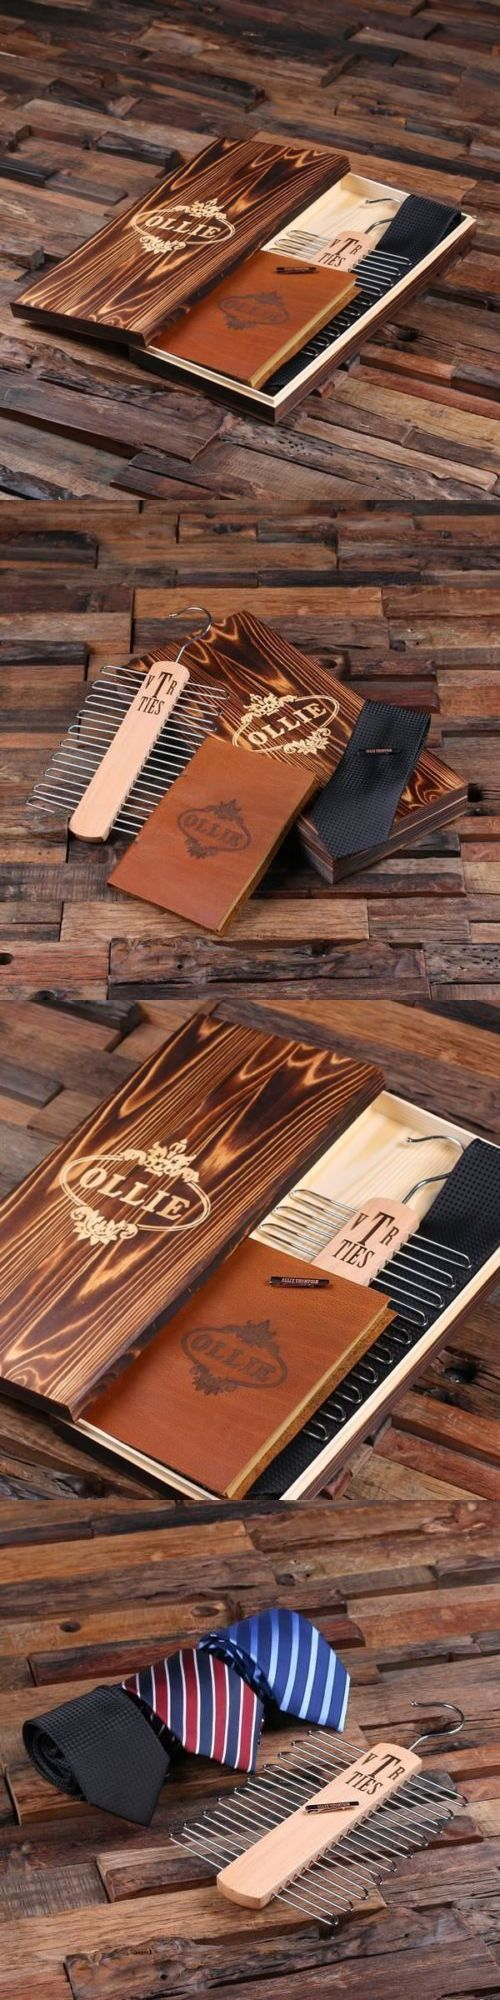 Tie Clasps and Tacks 10298: Personalized Mens Accessories Gifts Set With Wooden Box   Engraved Tie, Tie Clip -> BUY IT NOW ONLY: $59.99 on eBay!